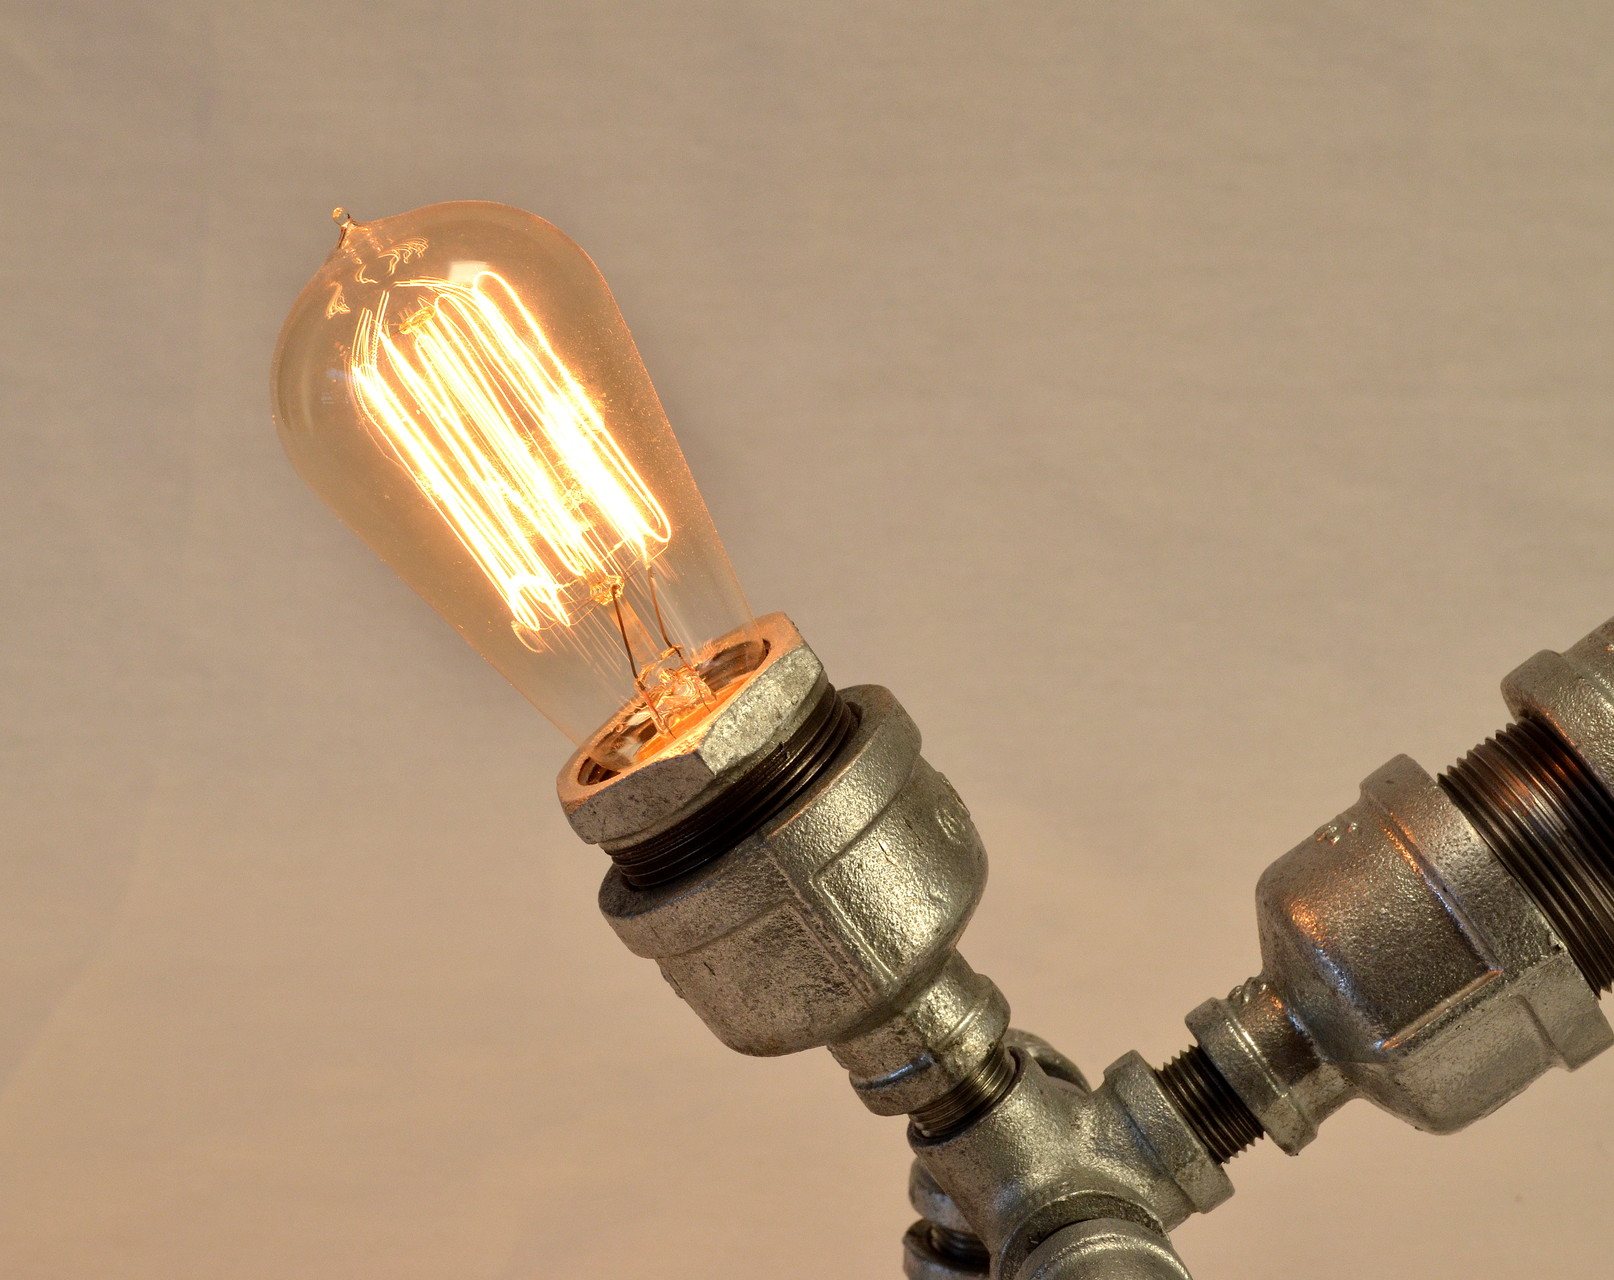 Dwog's beautiful 40 watt Edison-style hand-wound light bulb.